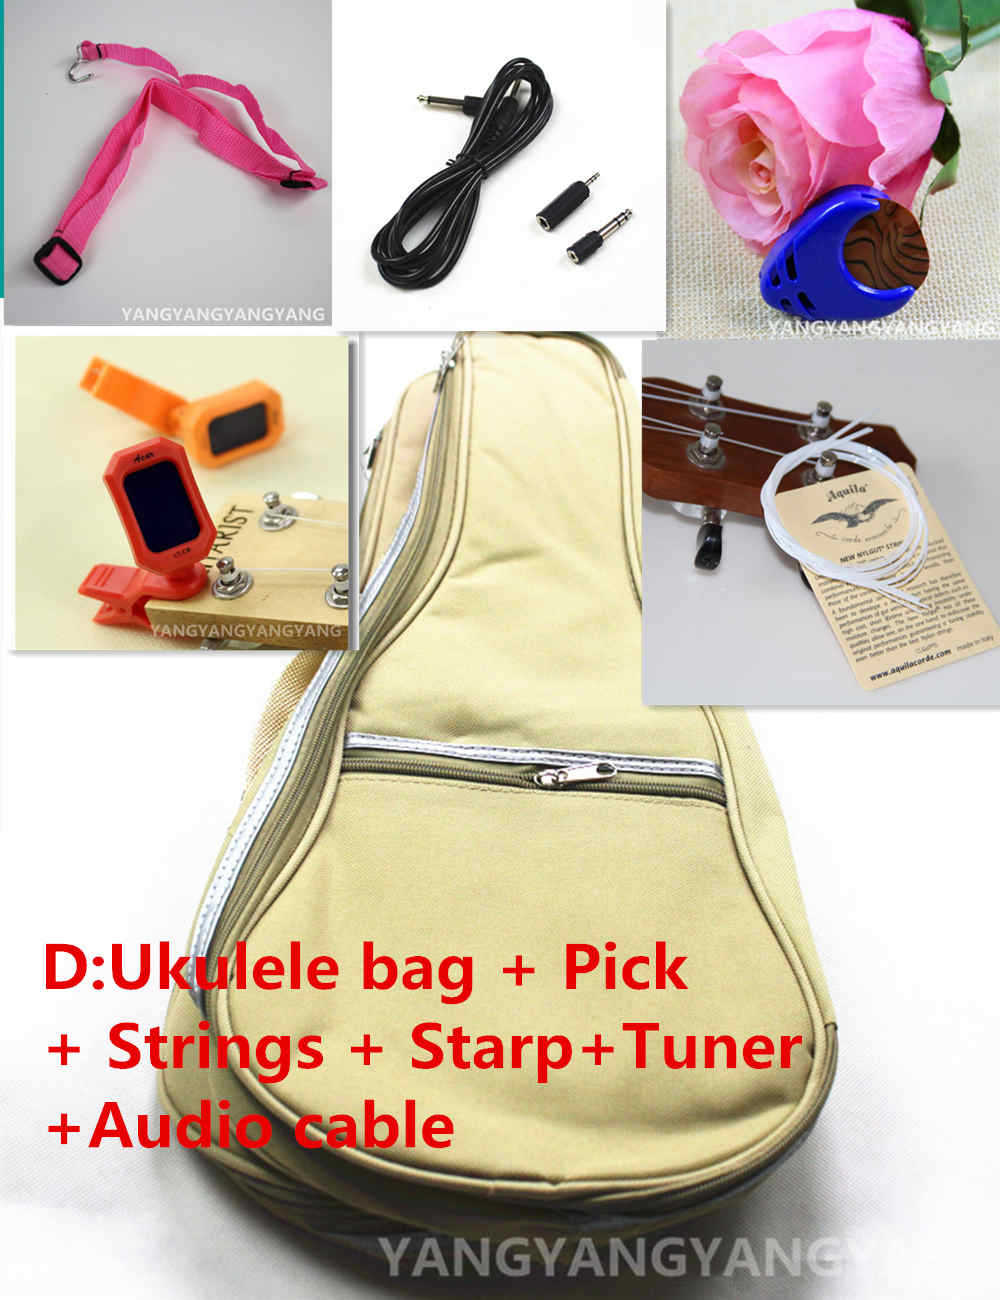 Soprano Concert Tenor Ukulele Bag Case Backpack 21 23 26 Inch Package Ukelele Pick  Strings starp Tuner Audio Cable Guitar Parts soprano concert tenor ukulele 21 23 26 inch hawaiian mini guitar 4 strings ukelele guitarra handcraft wood mahogany musical uke